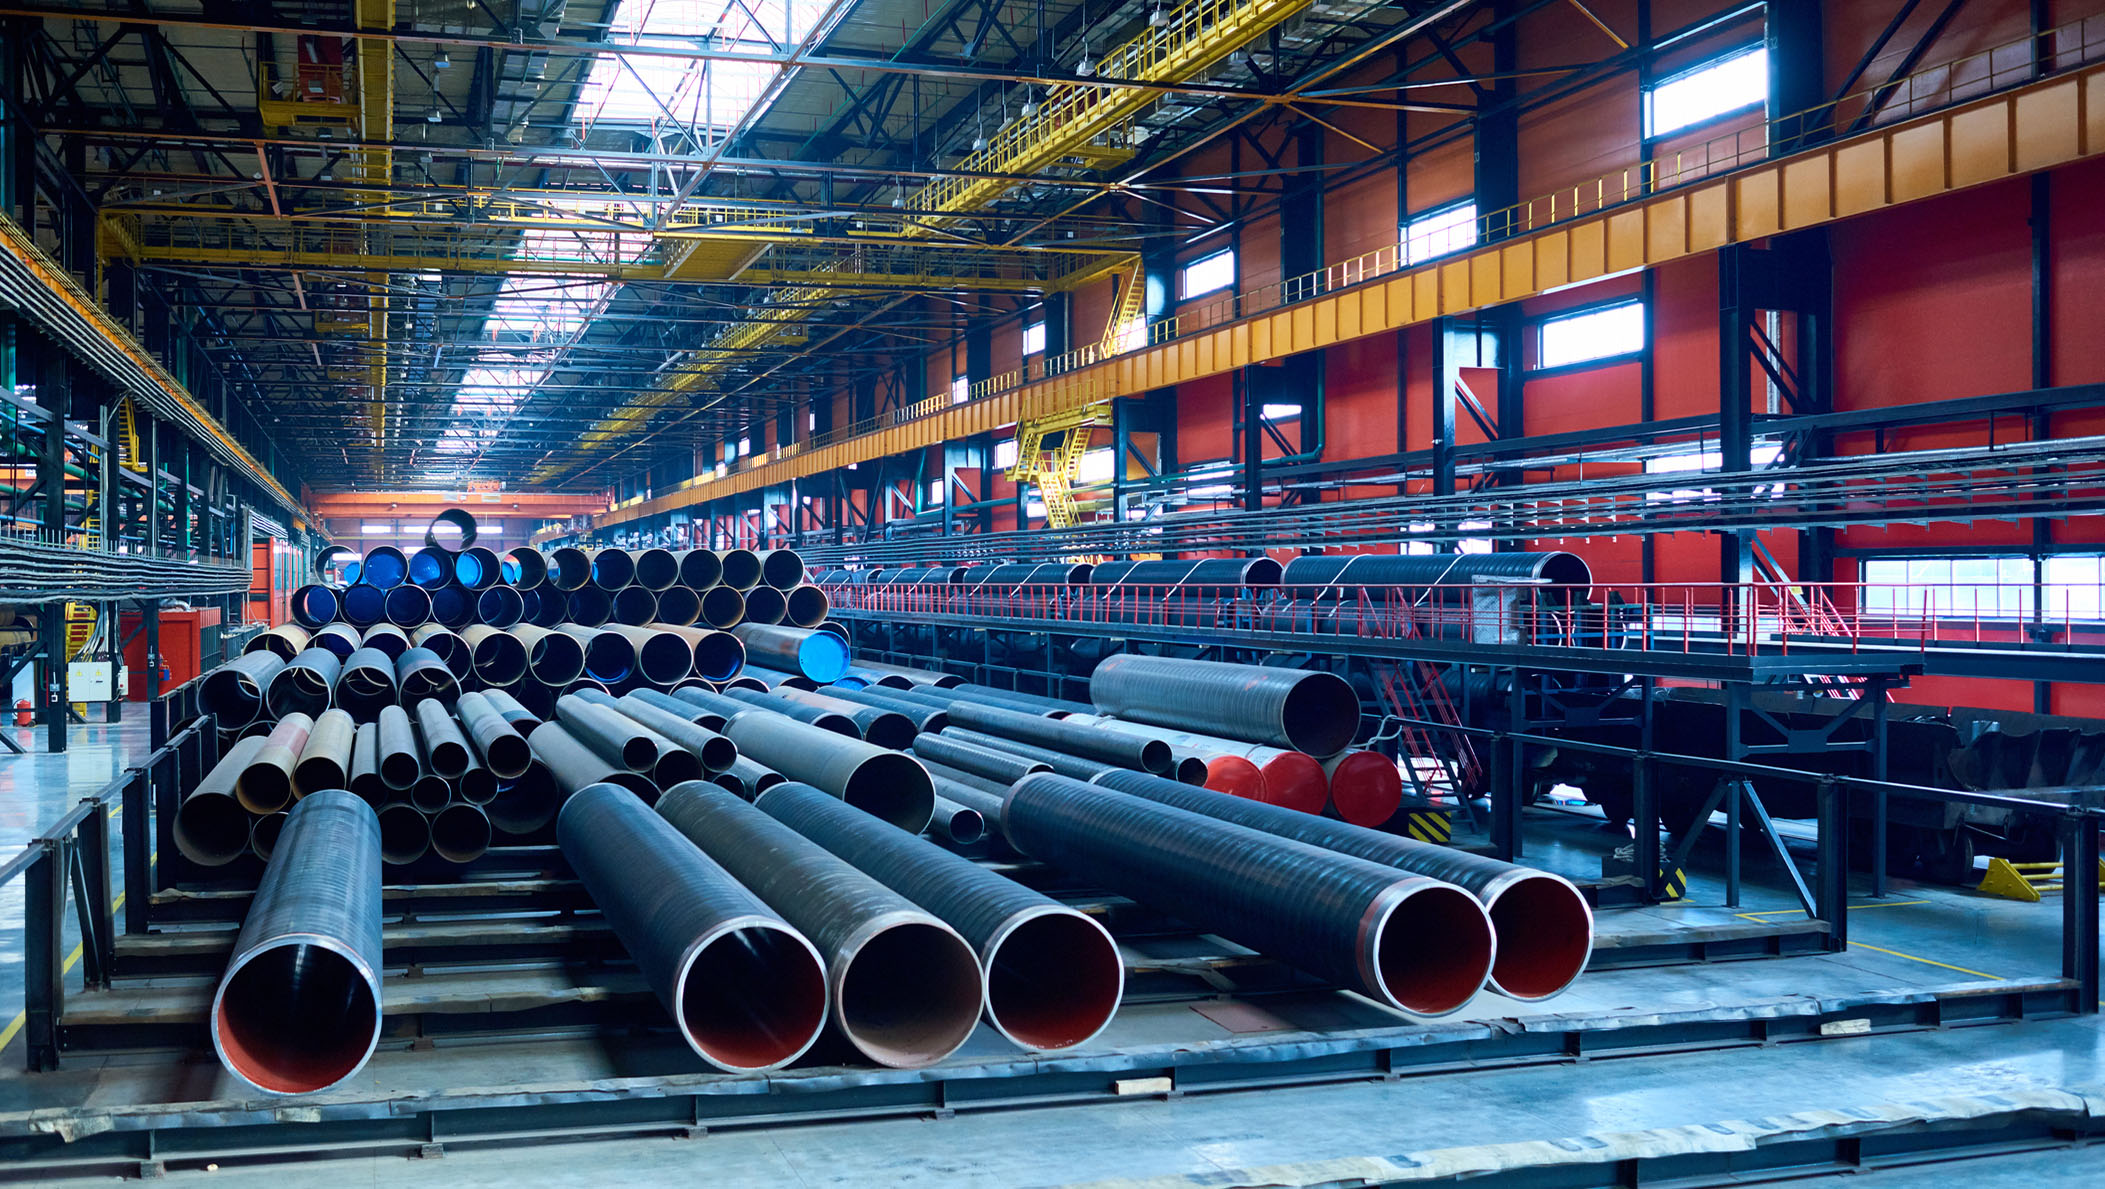 An abundance of tubes used for oil and gas industry placed in factory warehouse